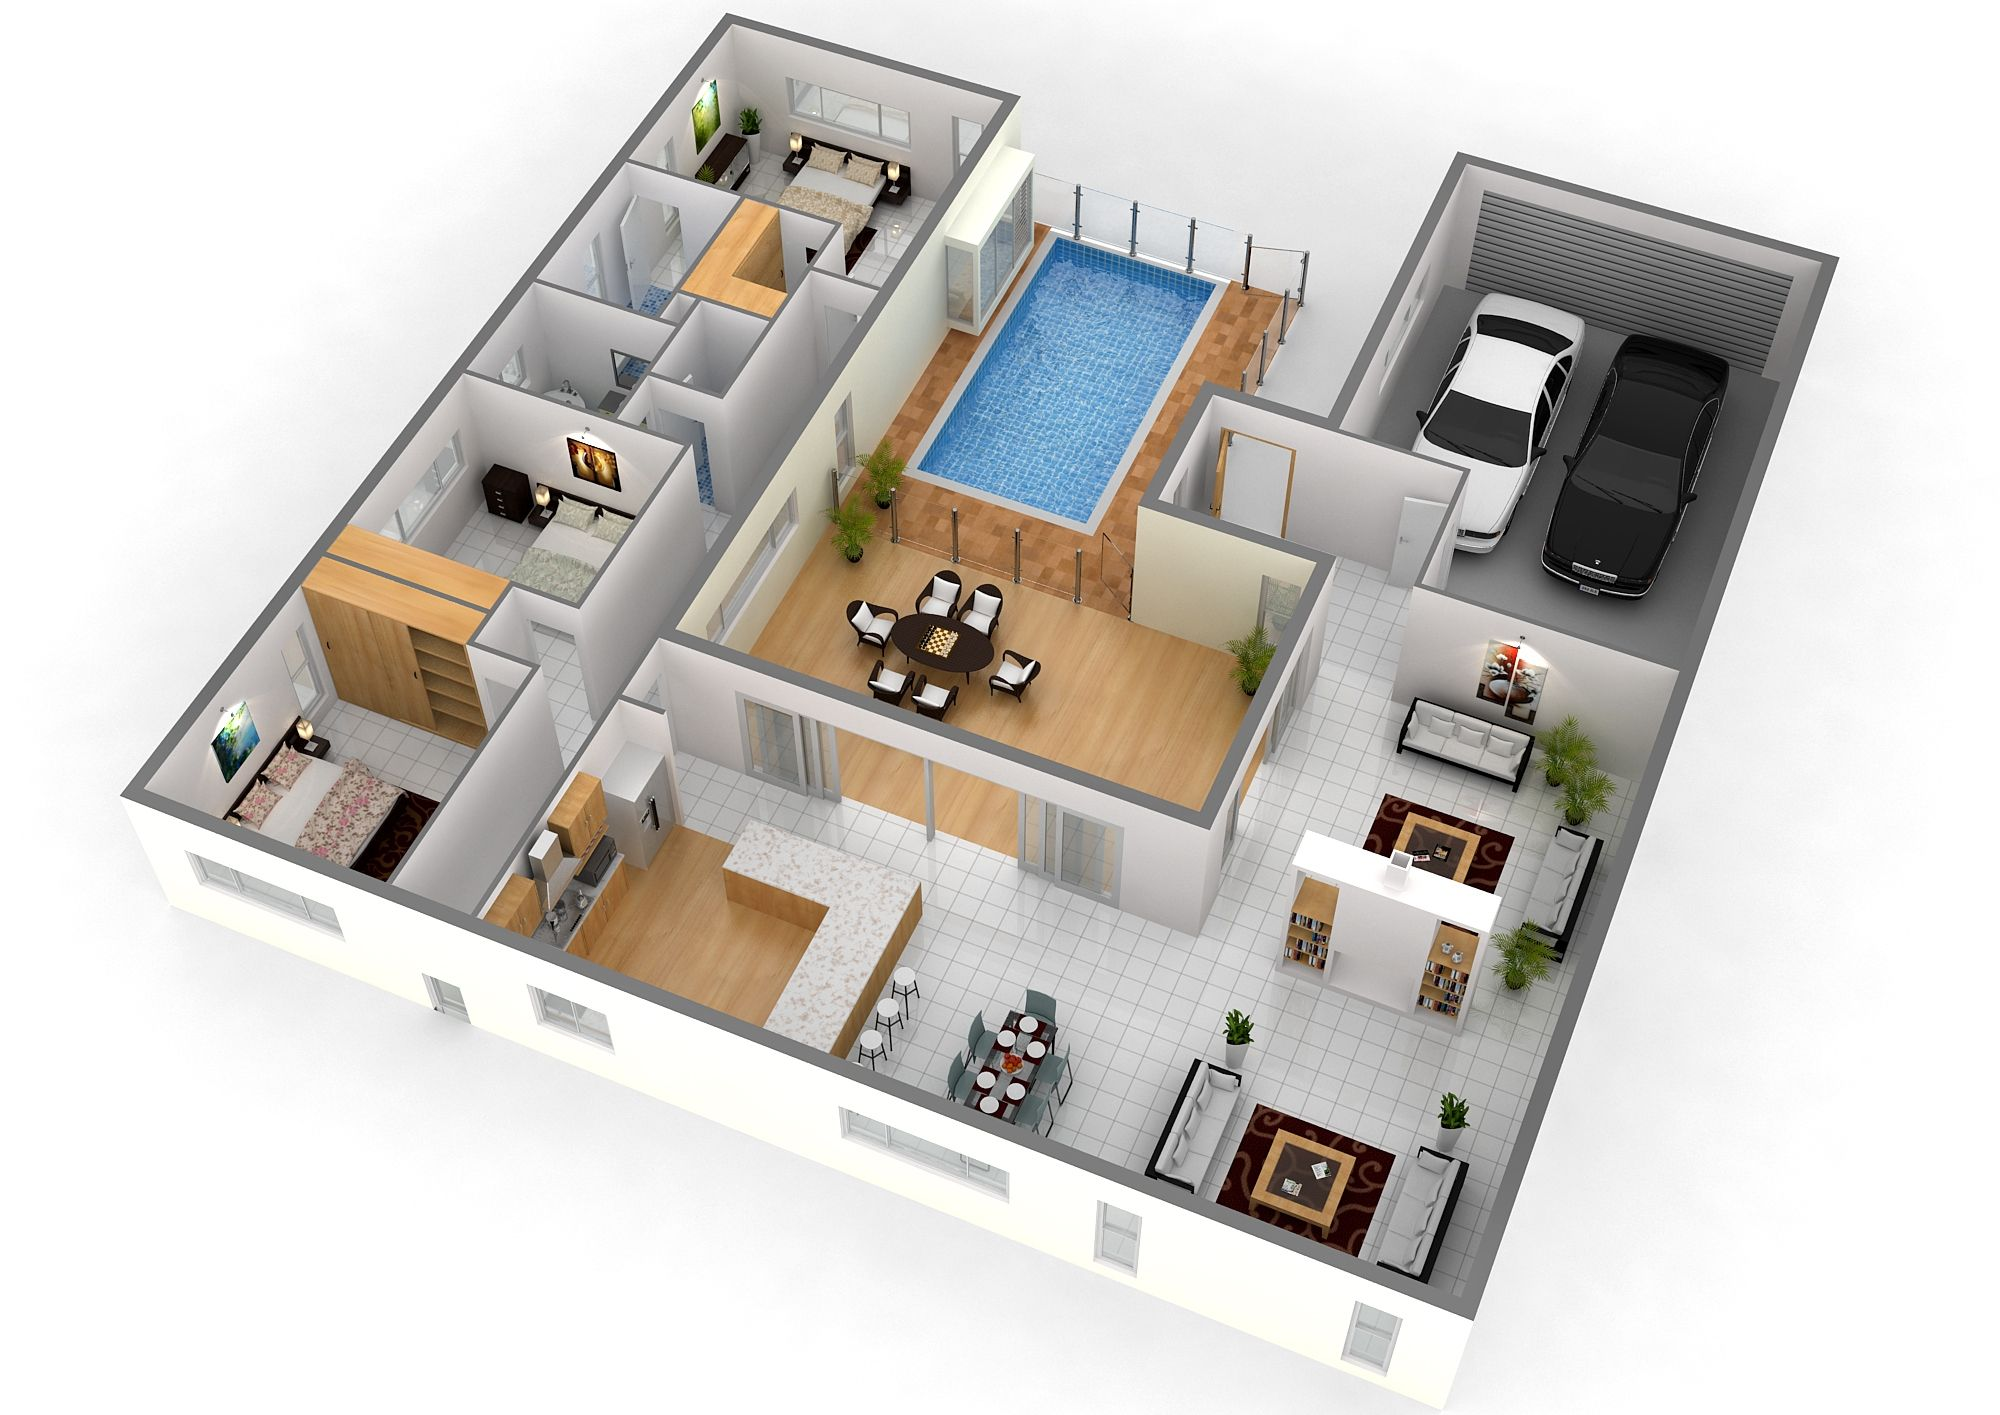 floor plans for homes also house idea pinterest rh